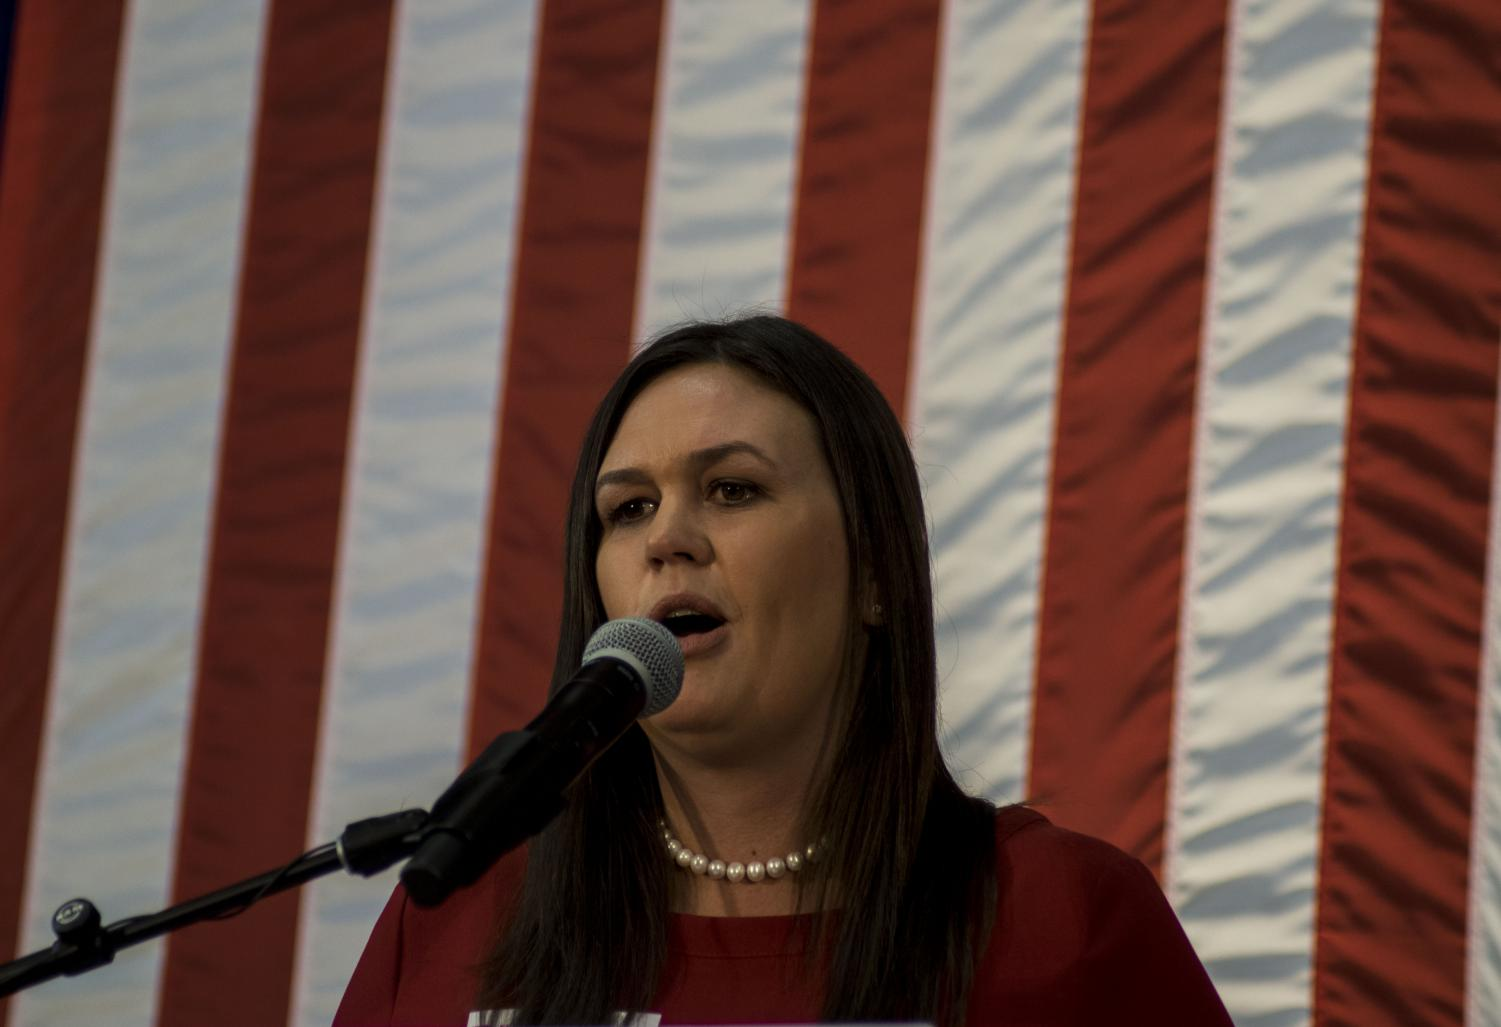 Sarah Huckabee Sanders speaks at the Second Annual Harvest Festival on Saturday, October 13, 2018. The event was a fund raiser for current governor Kim Reynolds.